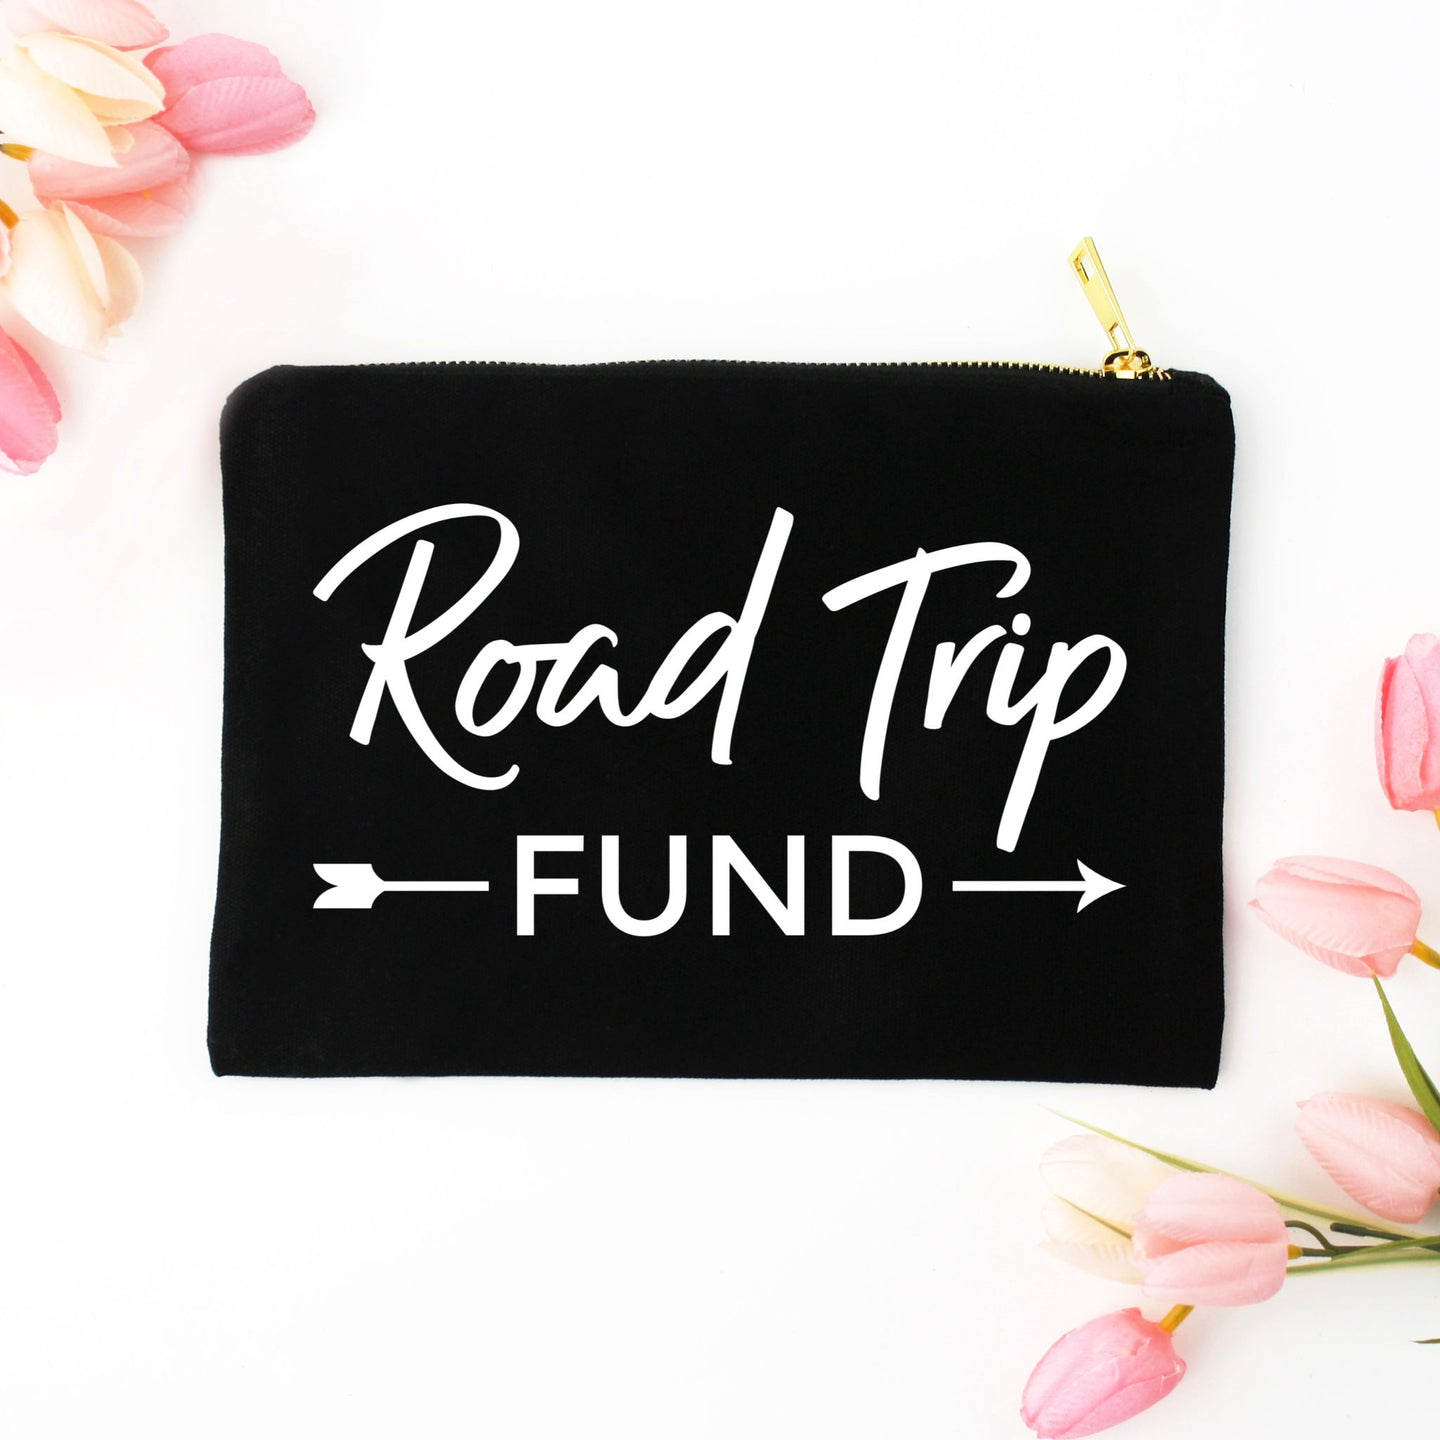 Road Trip Fund black cotton canvas zippered cosmetic makeup bag from Modern Trail